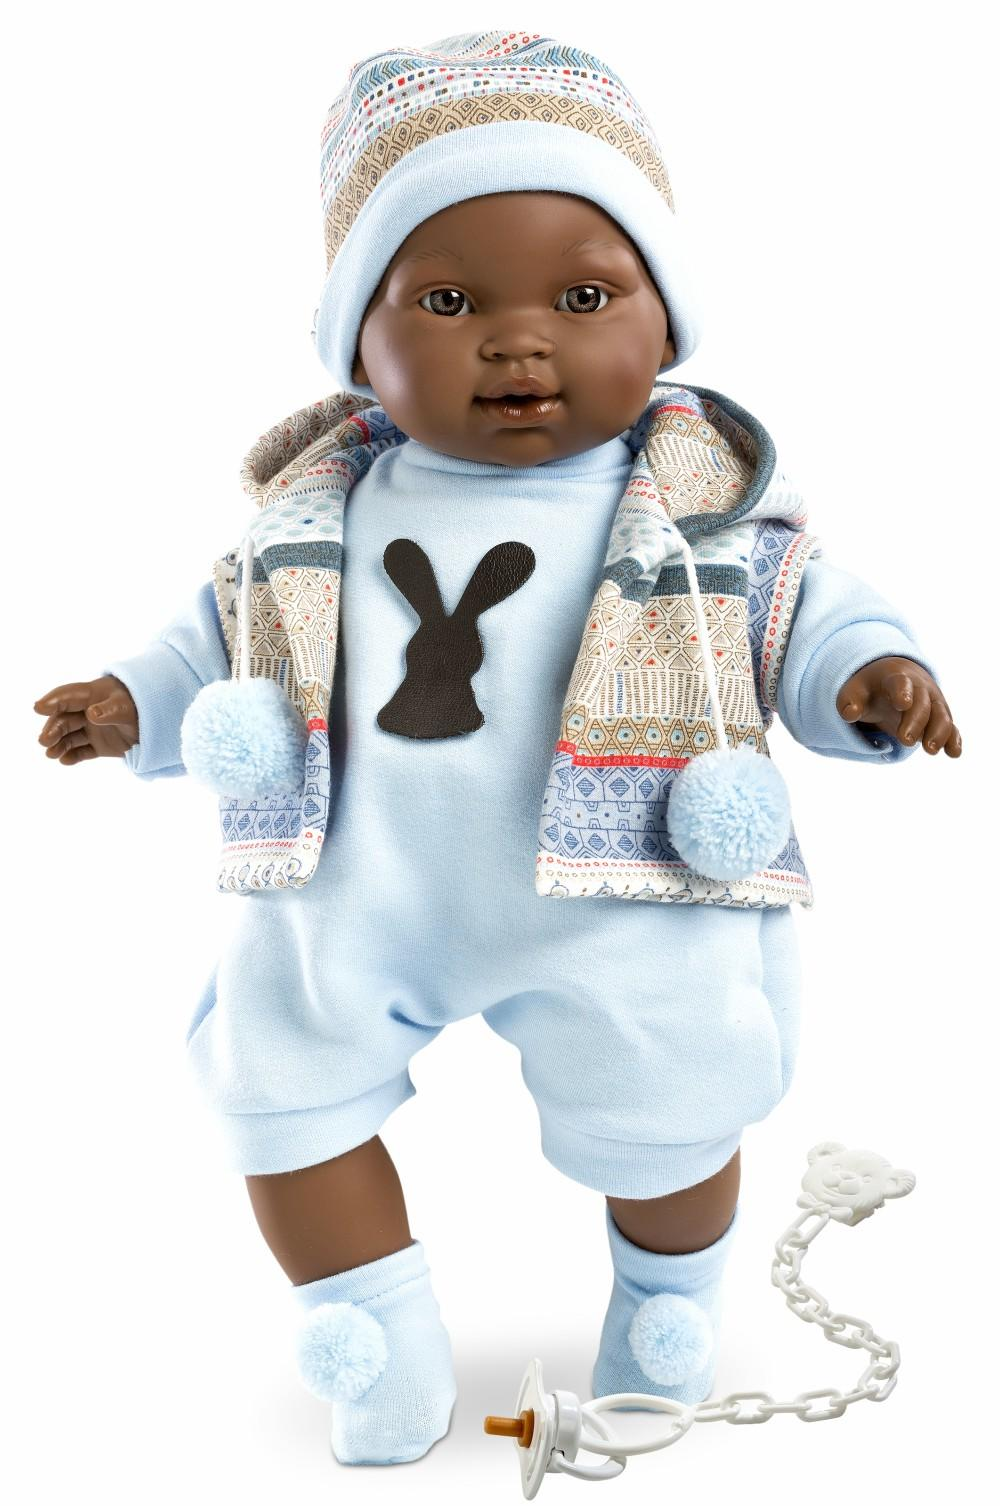 black boy doll in a blue outfit